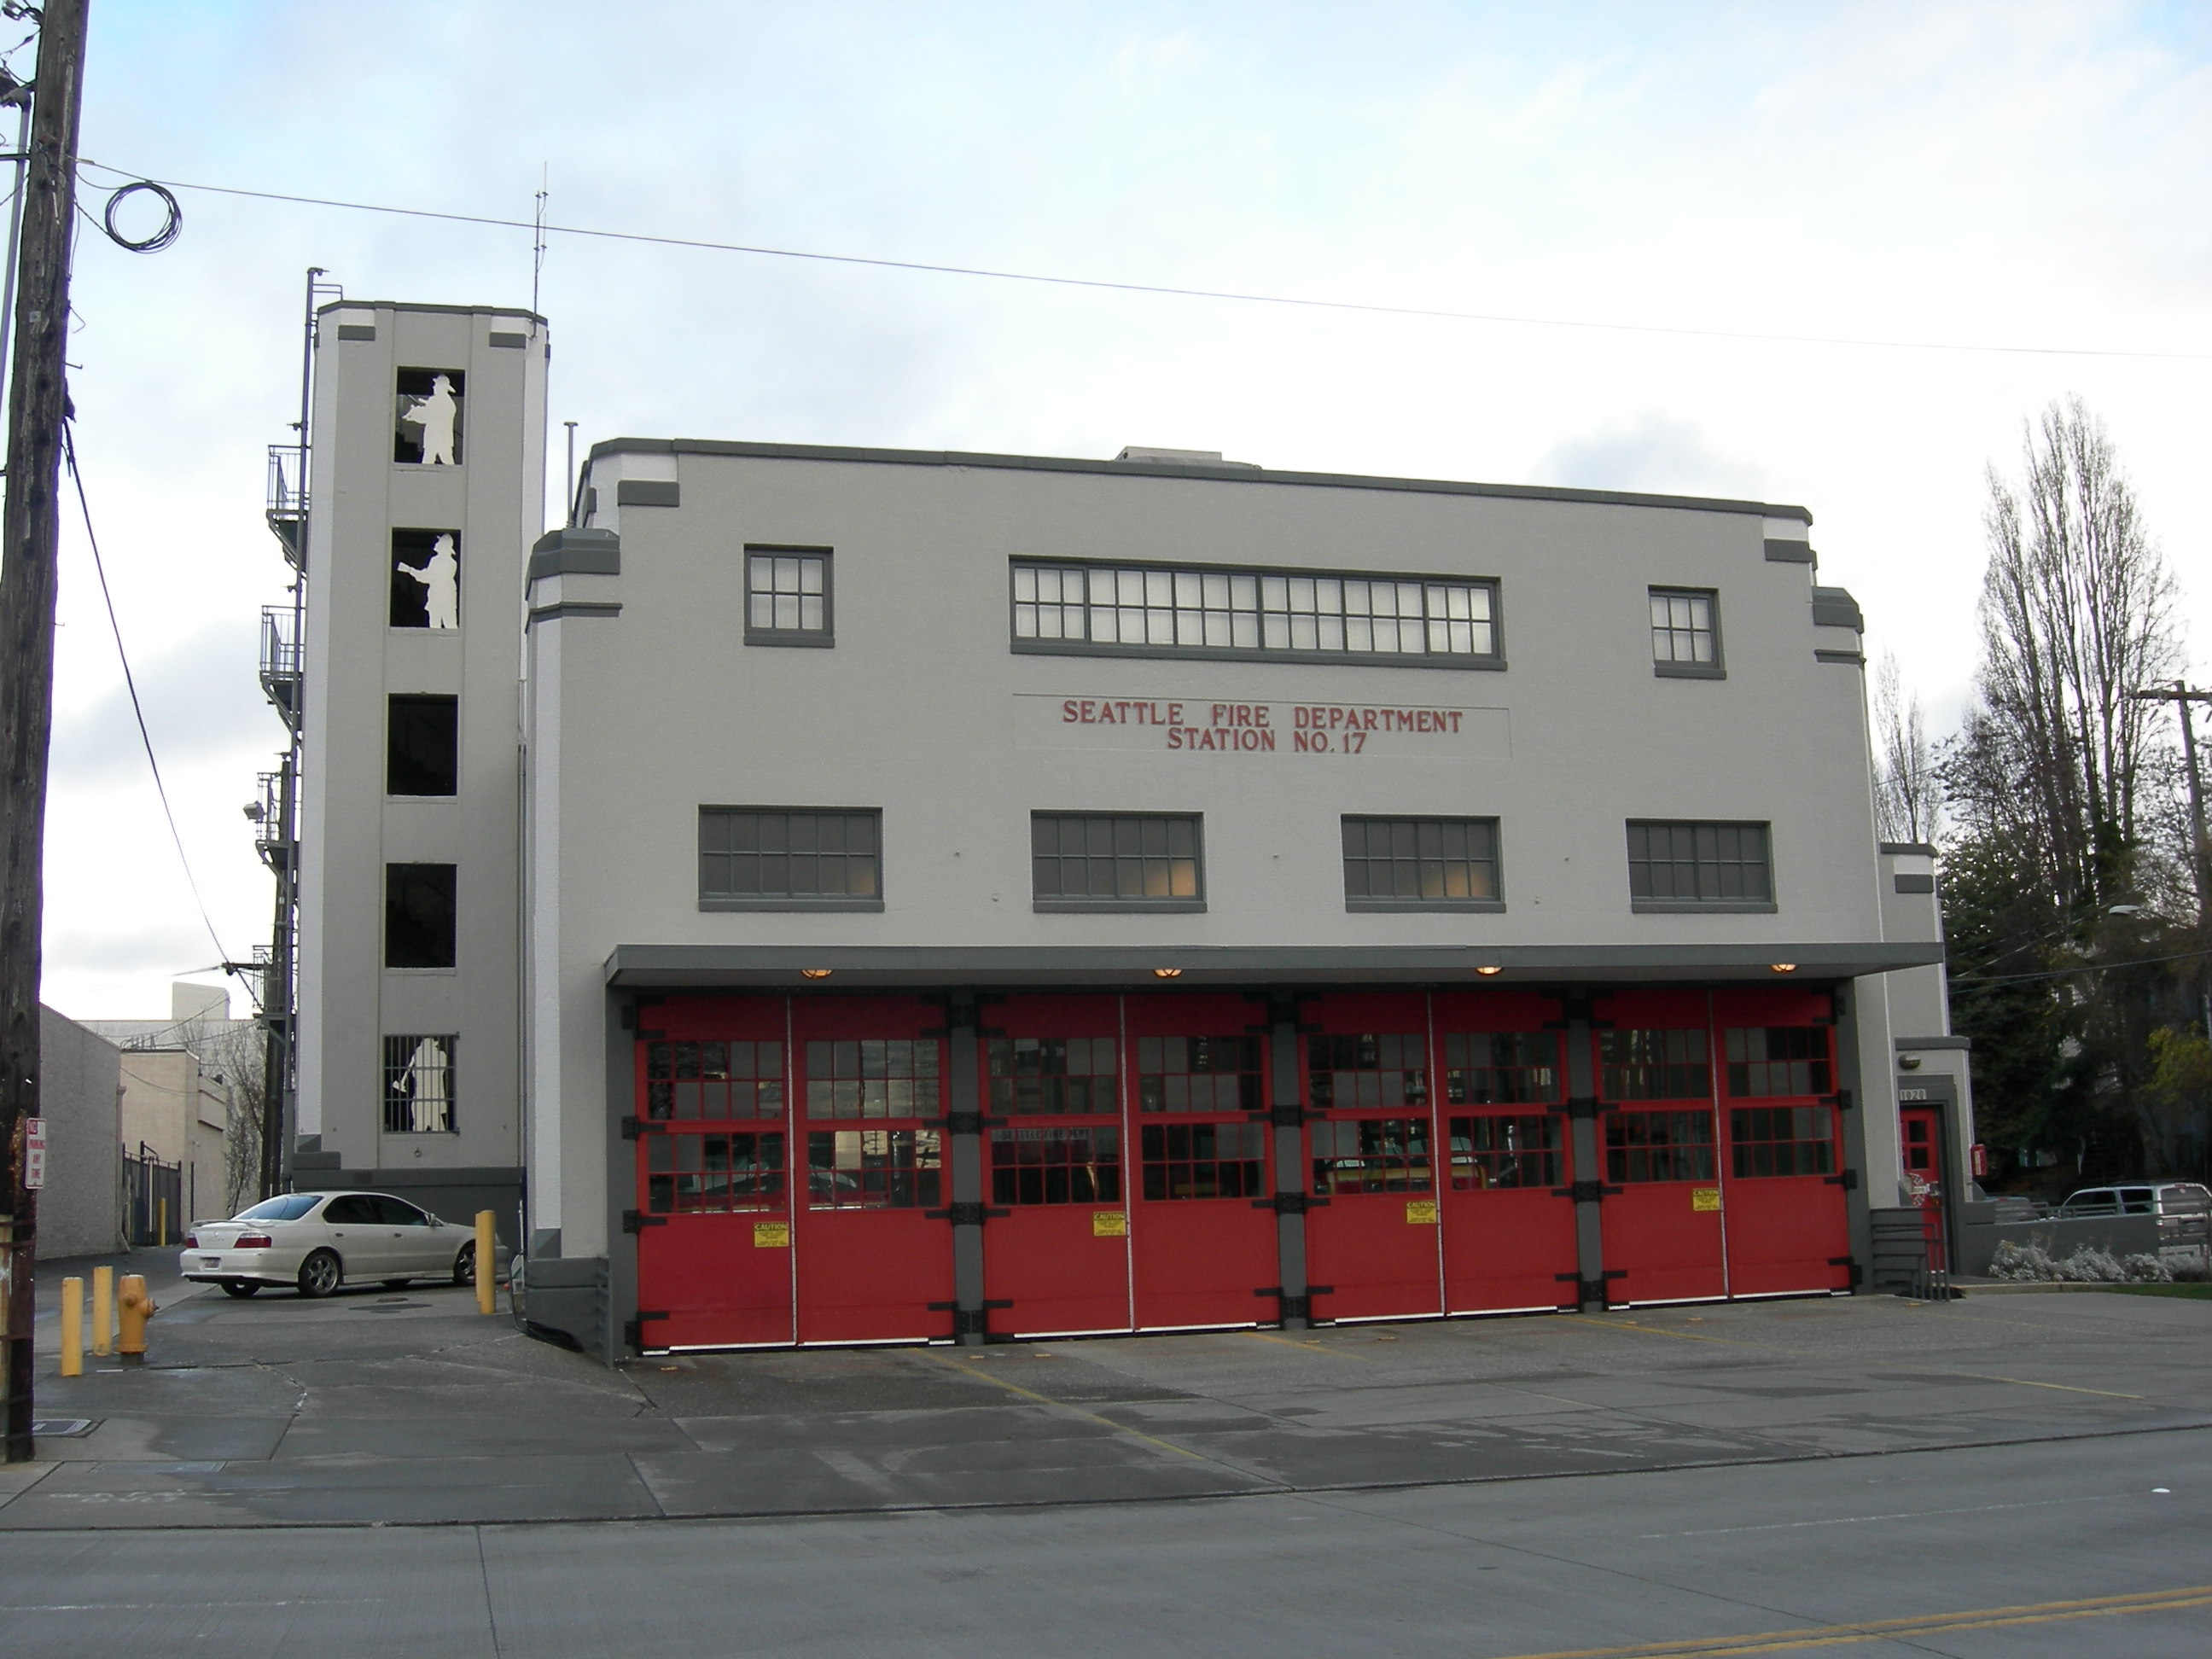 File:Seattle - Fire Station No. 17 02.jpg - Wikimedia Commons